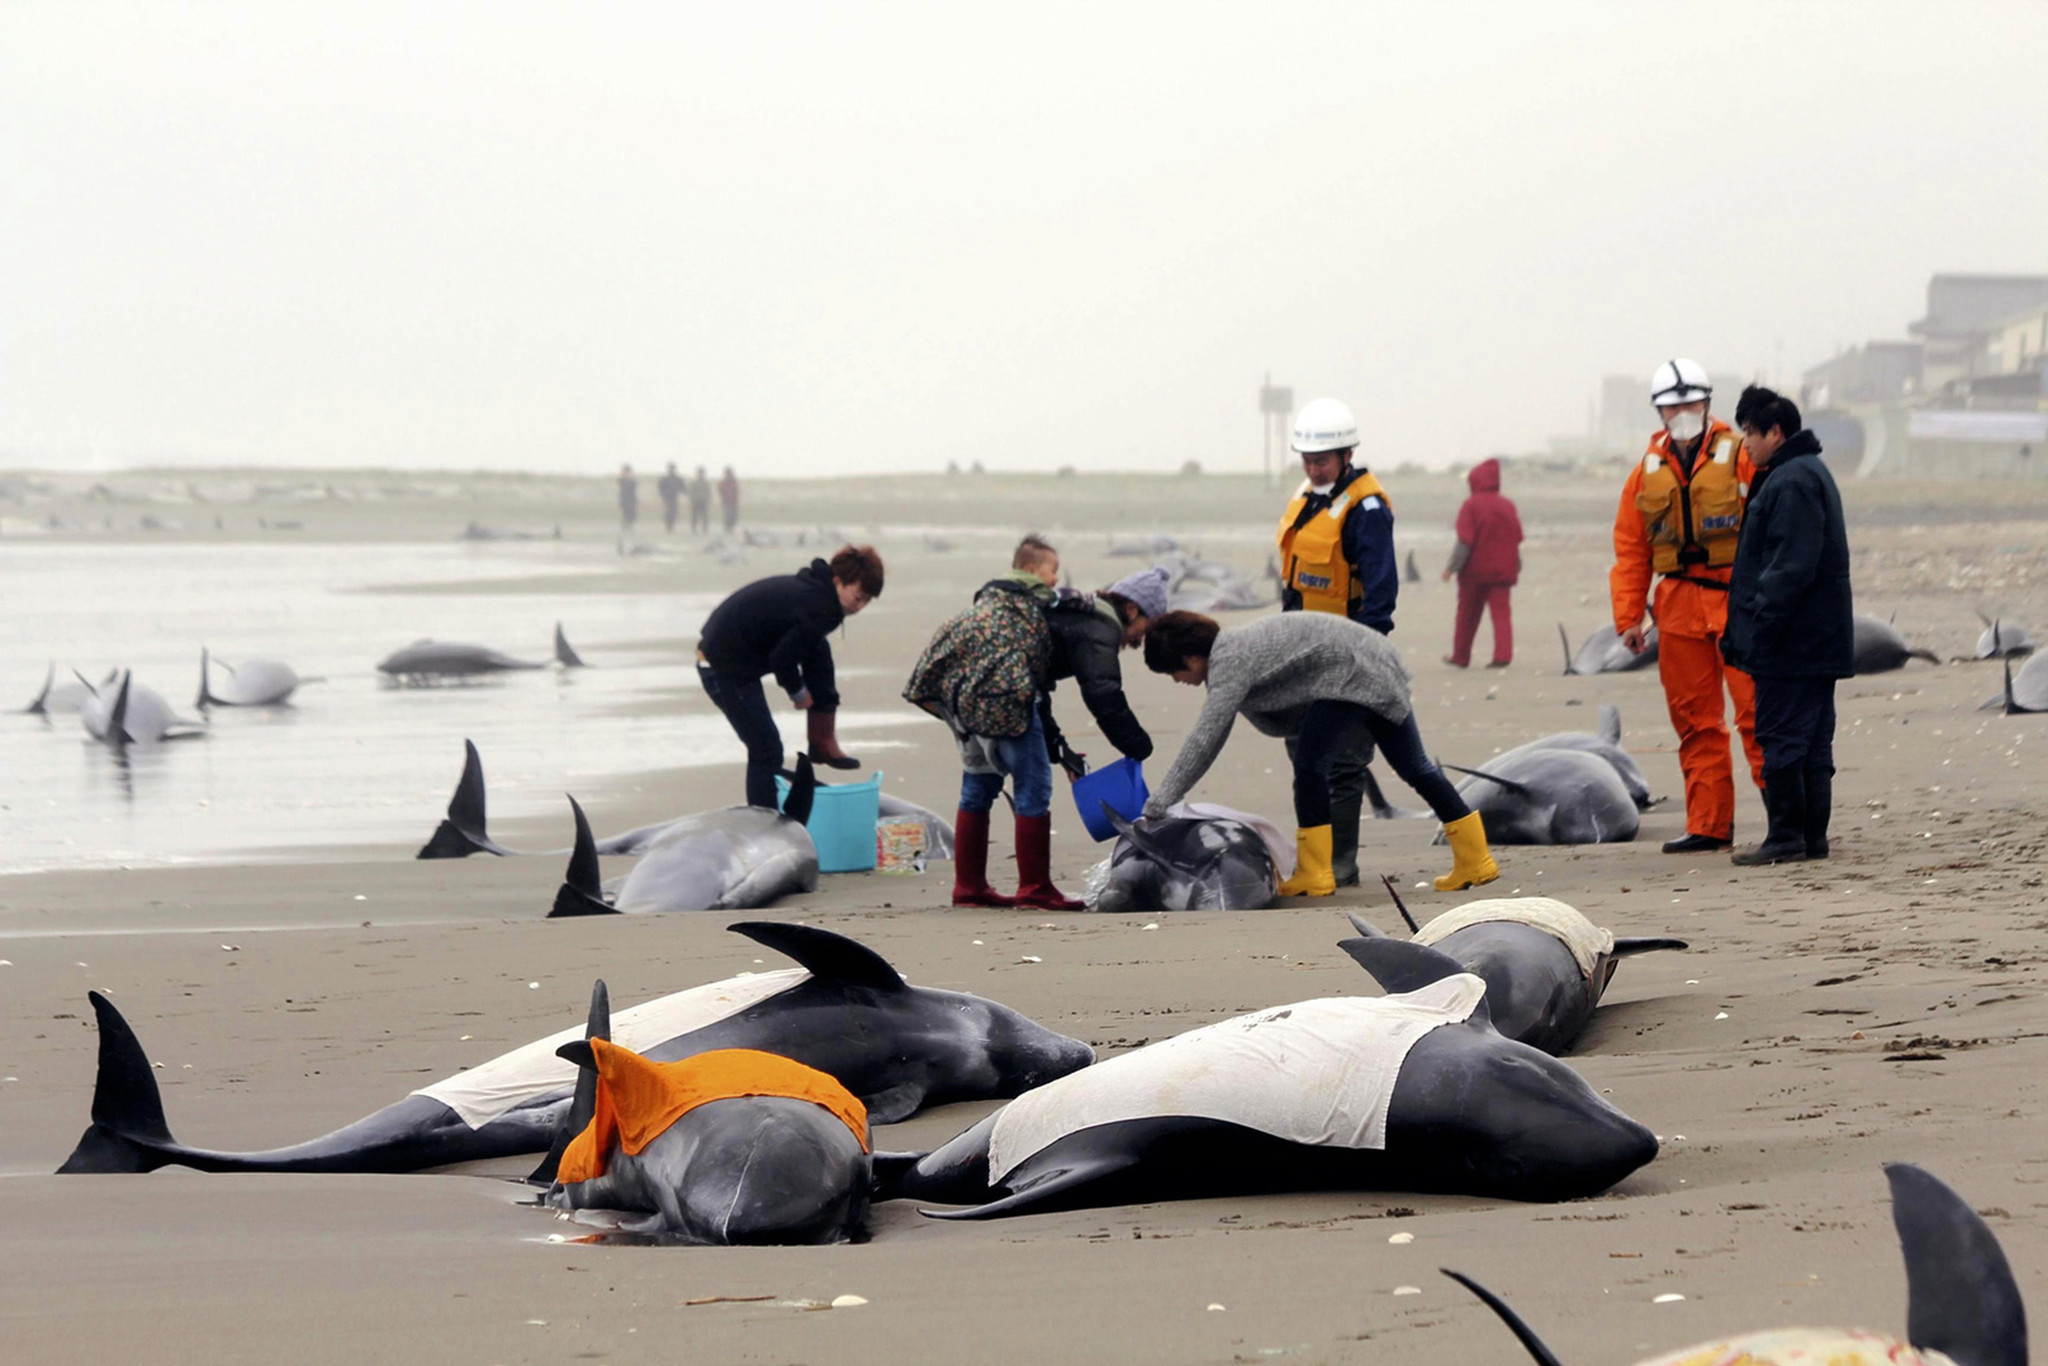 Beached dolphins - photo#15